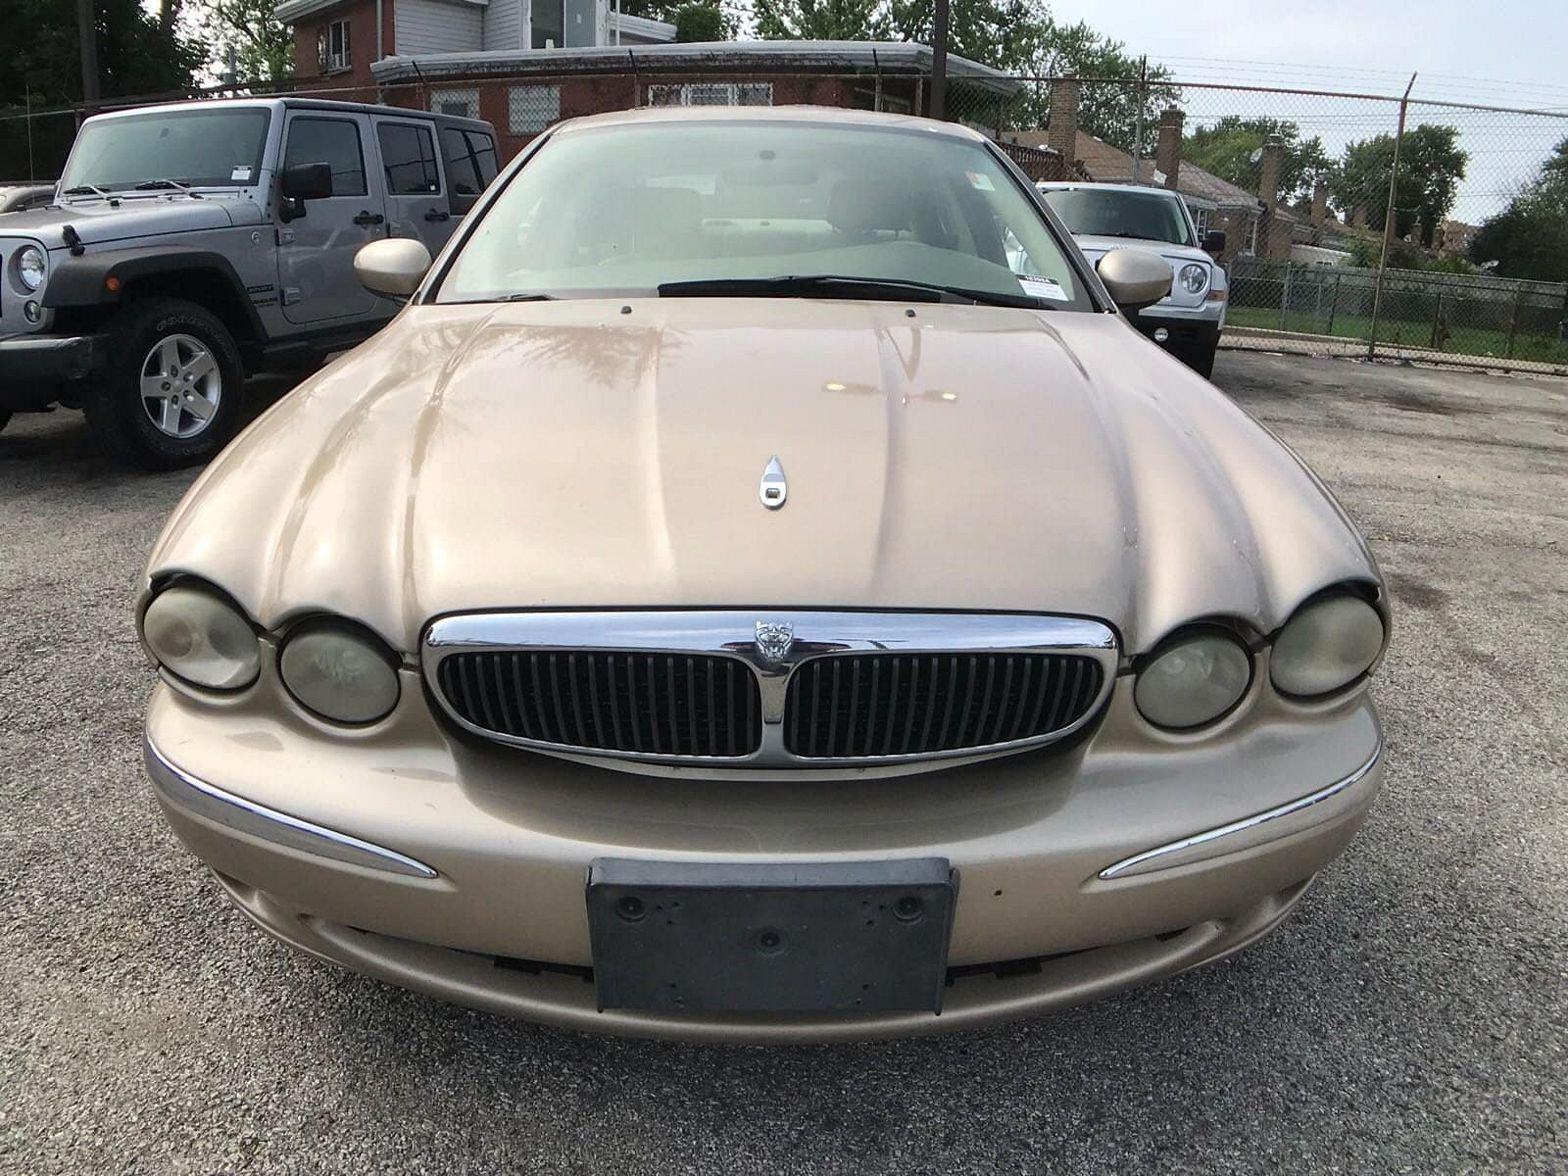 2003 Jaguar X-Type $990